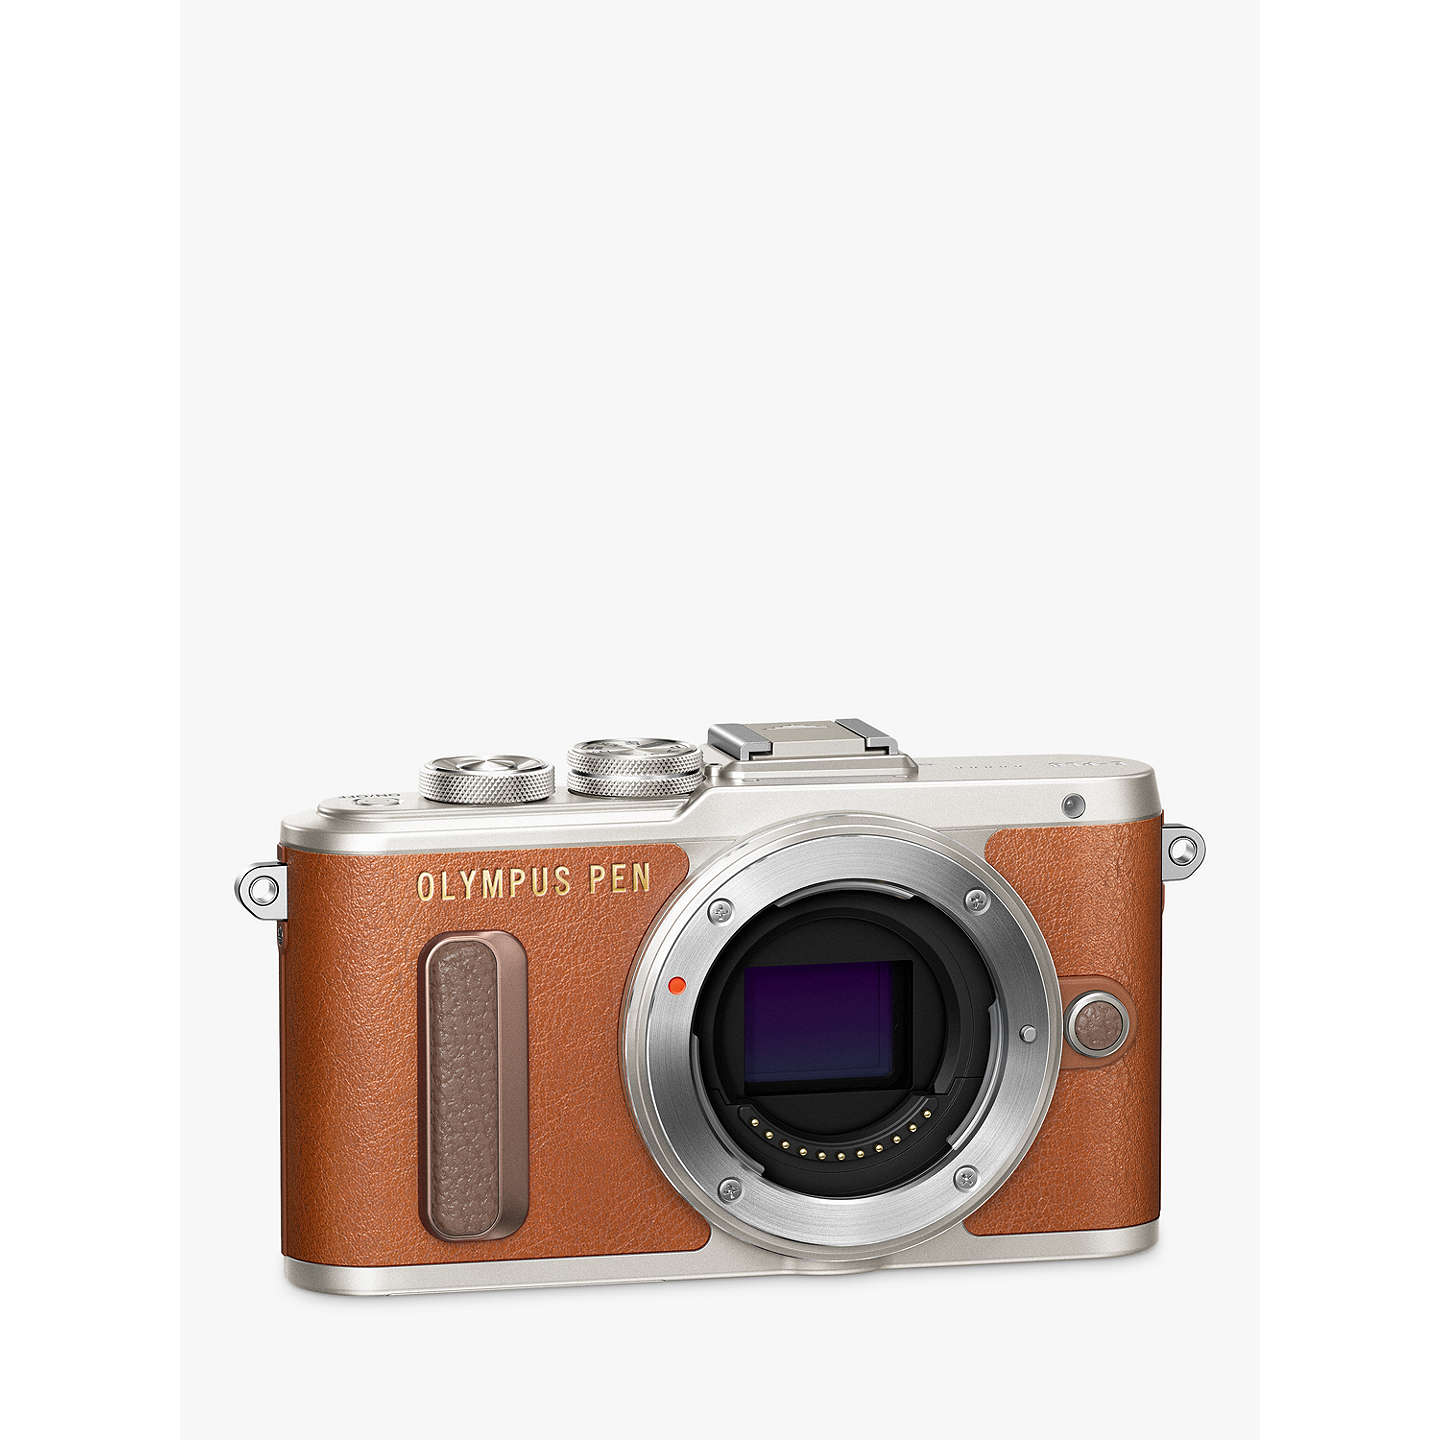 "BuyOlympus PEN E-PL8 Compact System Camera with 14-42mm EZ Lens, HD 1080p, 16.1MP, 3"" LCD Touch Screen, Tan Online at johnlewis.com"